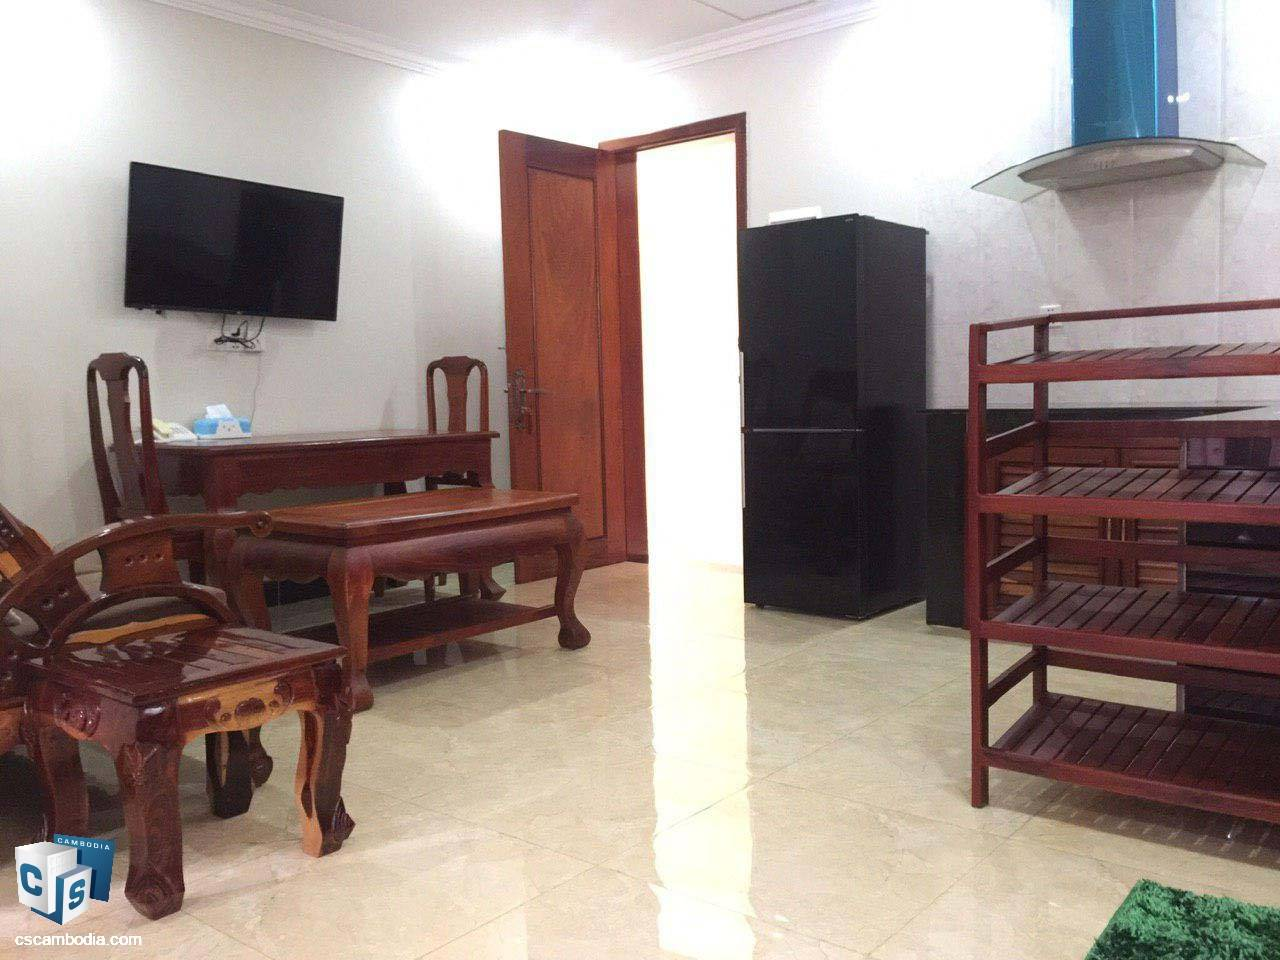 1 Bedroom Apartment – For Rent- Taphul Village – Svay Dangkom Commune – Siem Reap